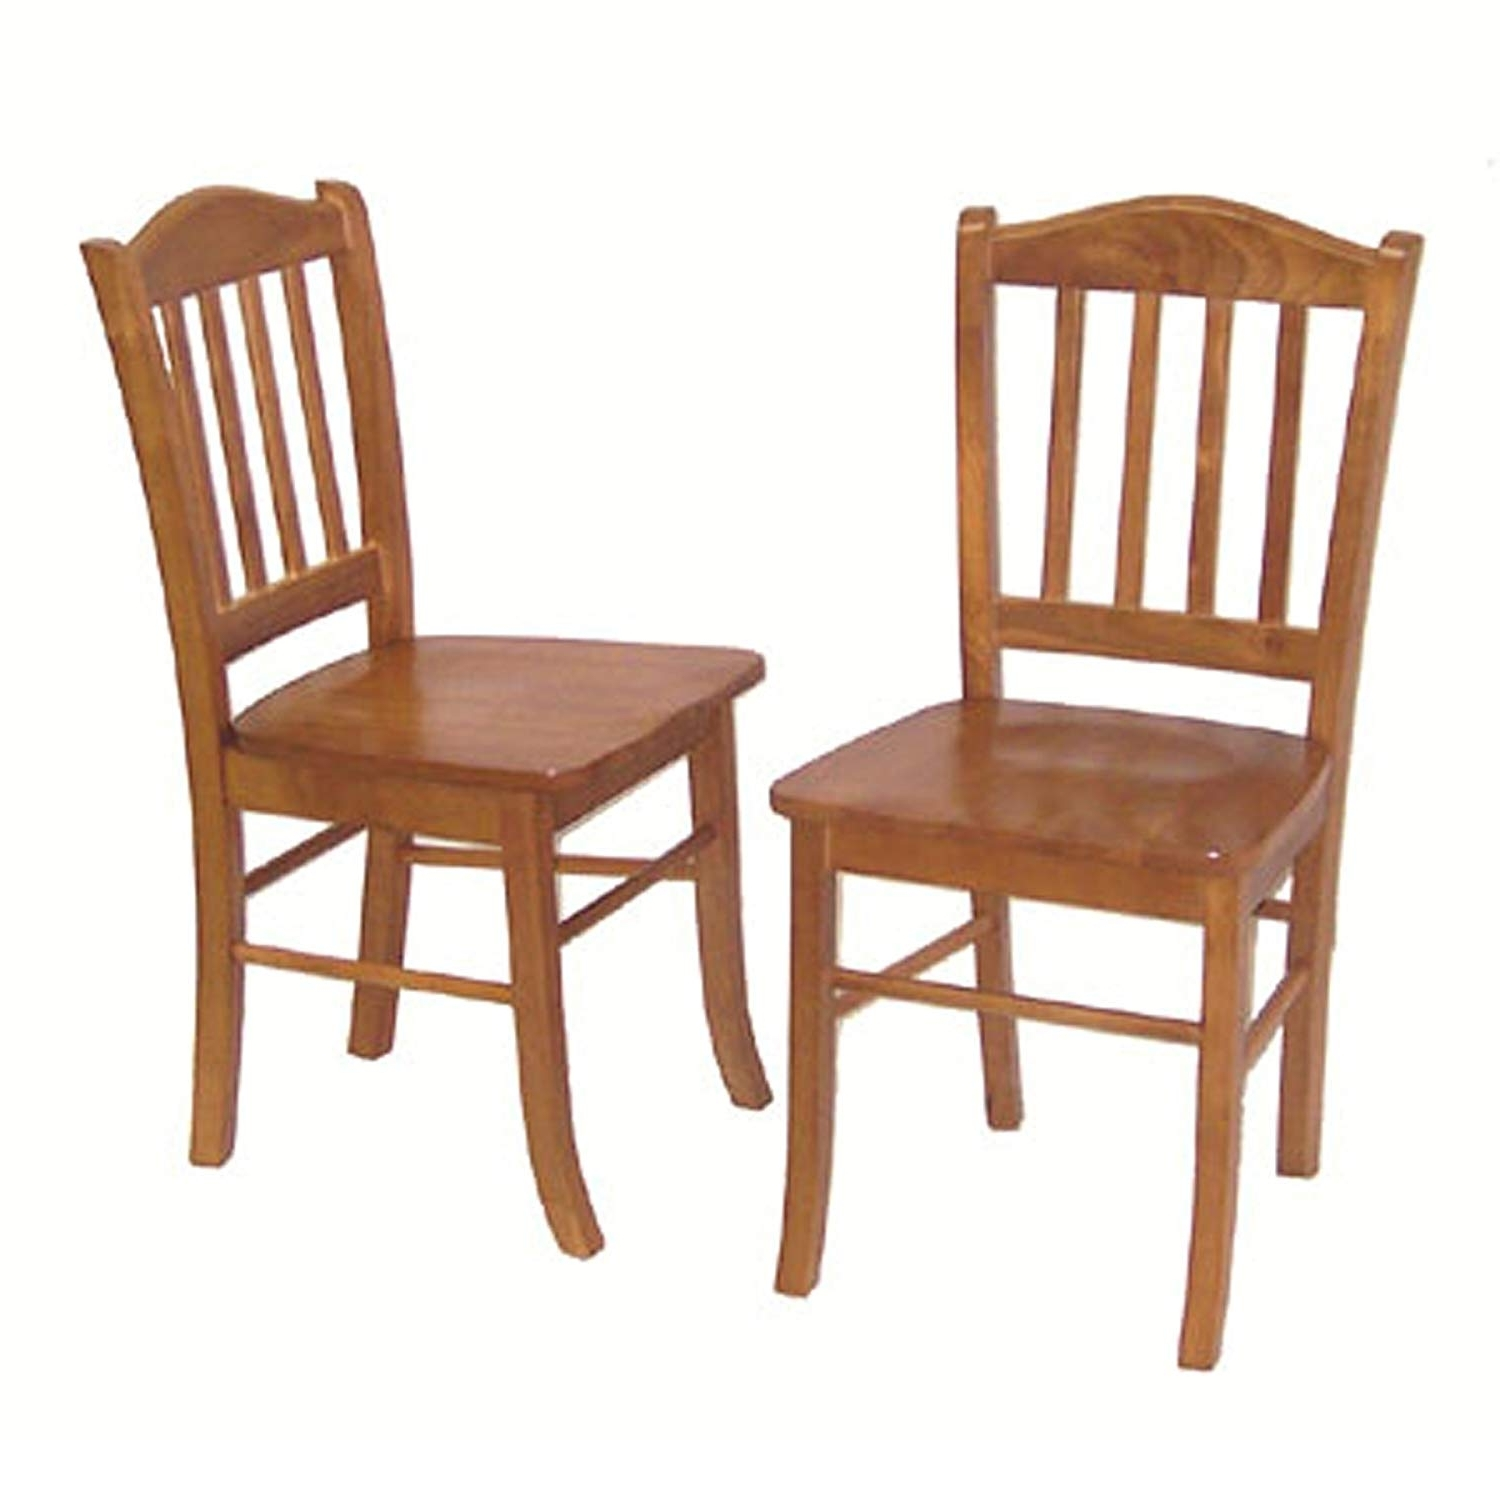 2018 Oak Dining Chairs Within Amazon: Boraam 30136 Shaker Chair, Oak, Set Of 2: Kitchen & Dining (Gallery 6 of 25)